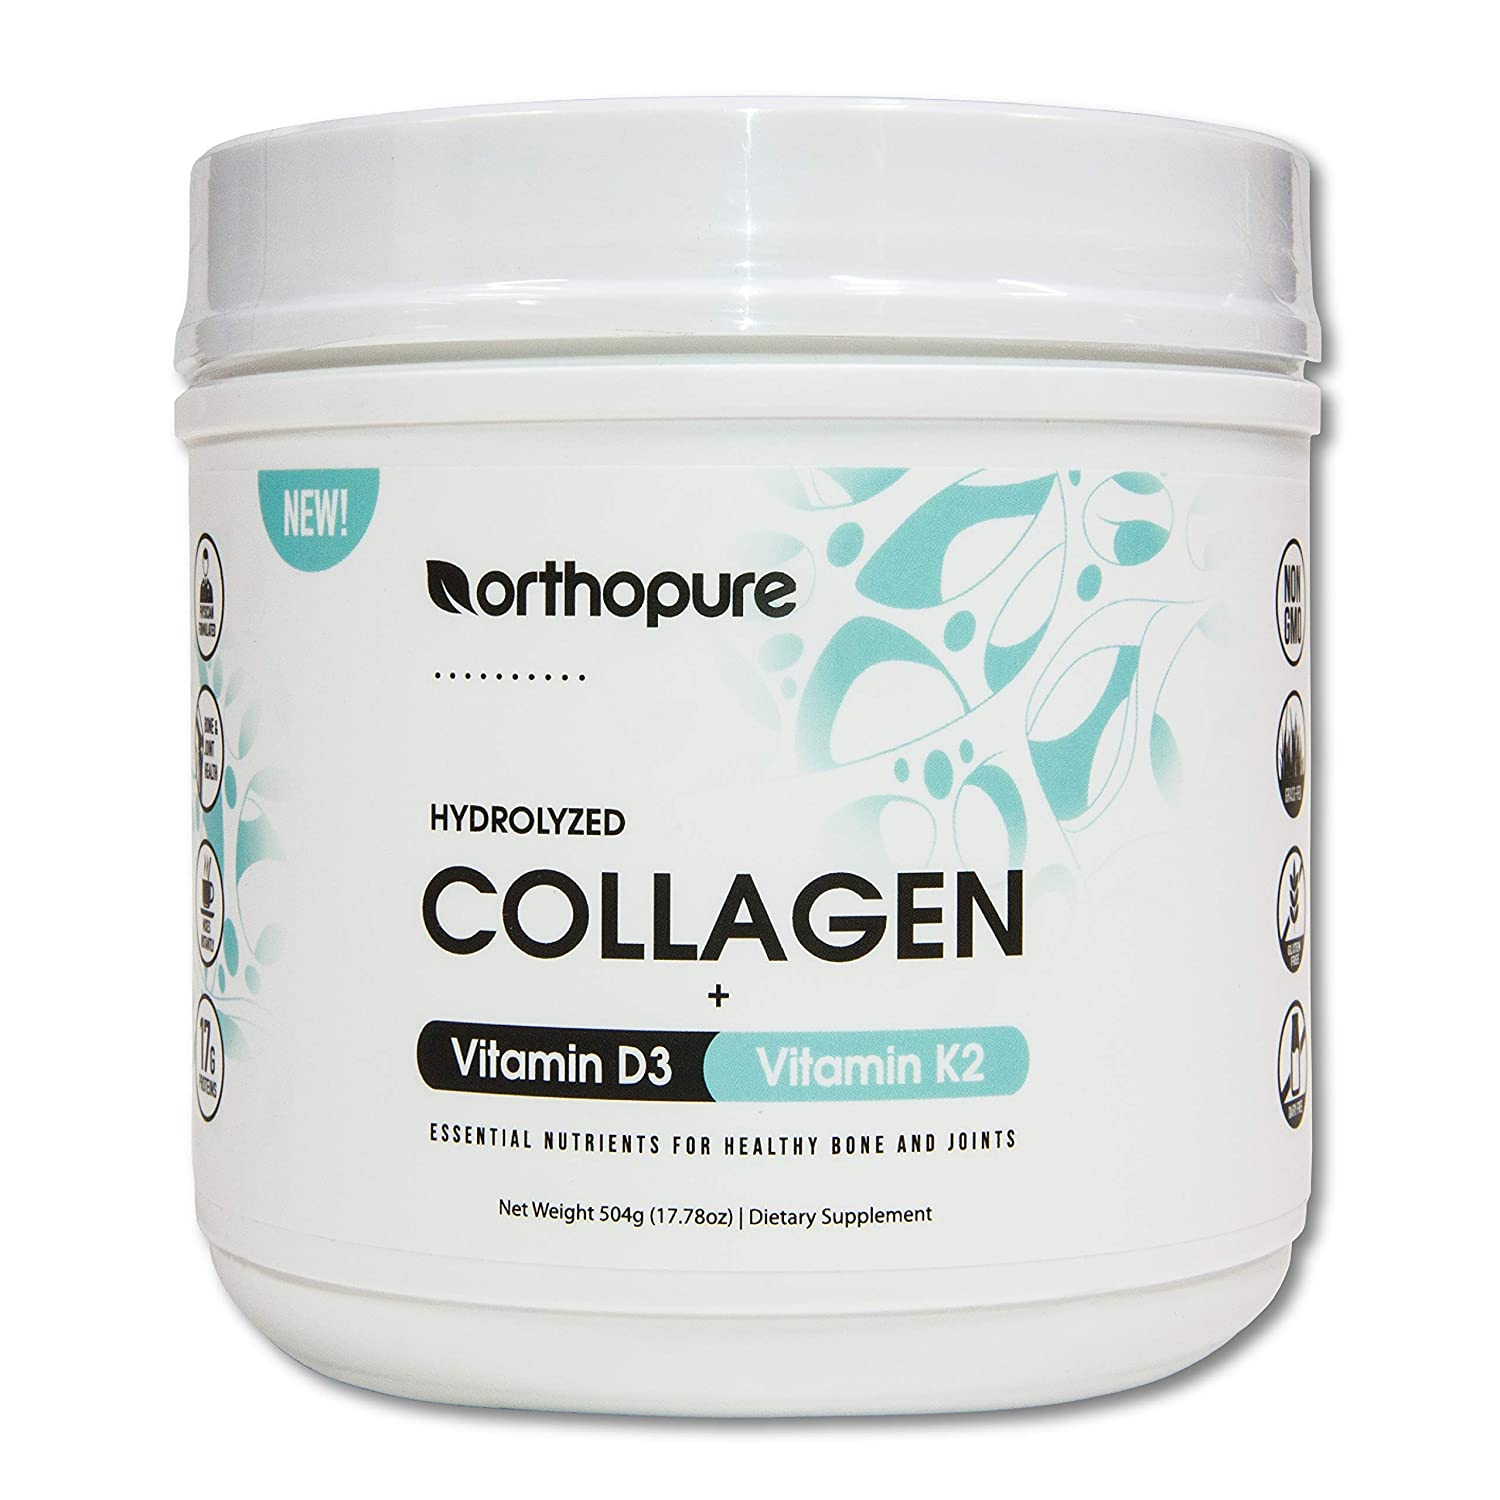 Orthopure Collagen Peptides Fortified with Vitamin D3 and Vitamin K2, (18g Collagen peptides)